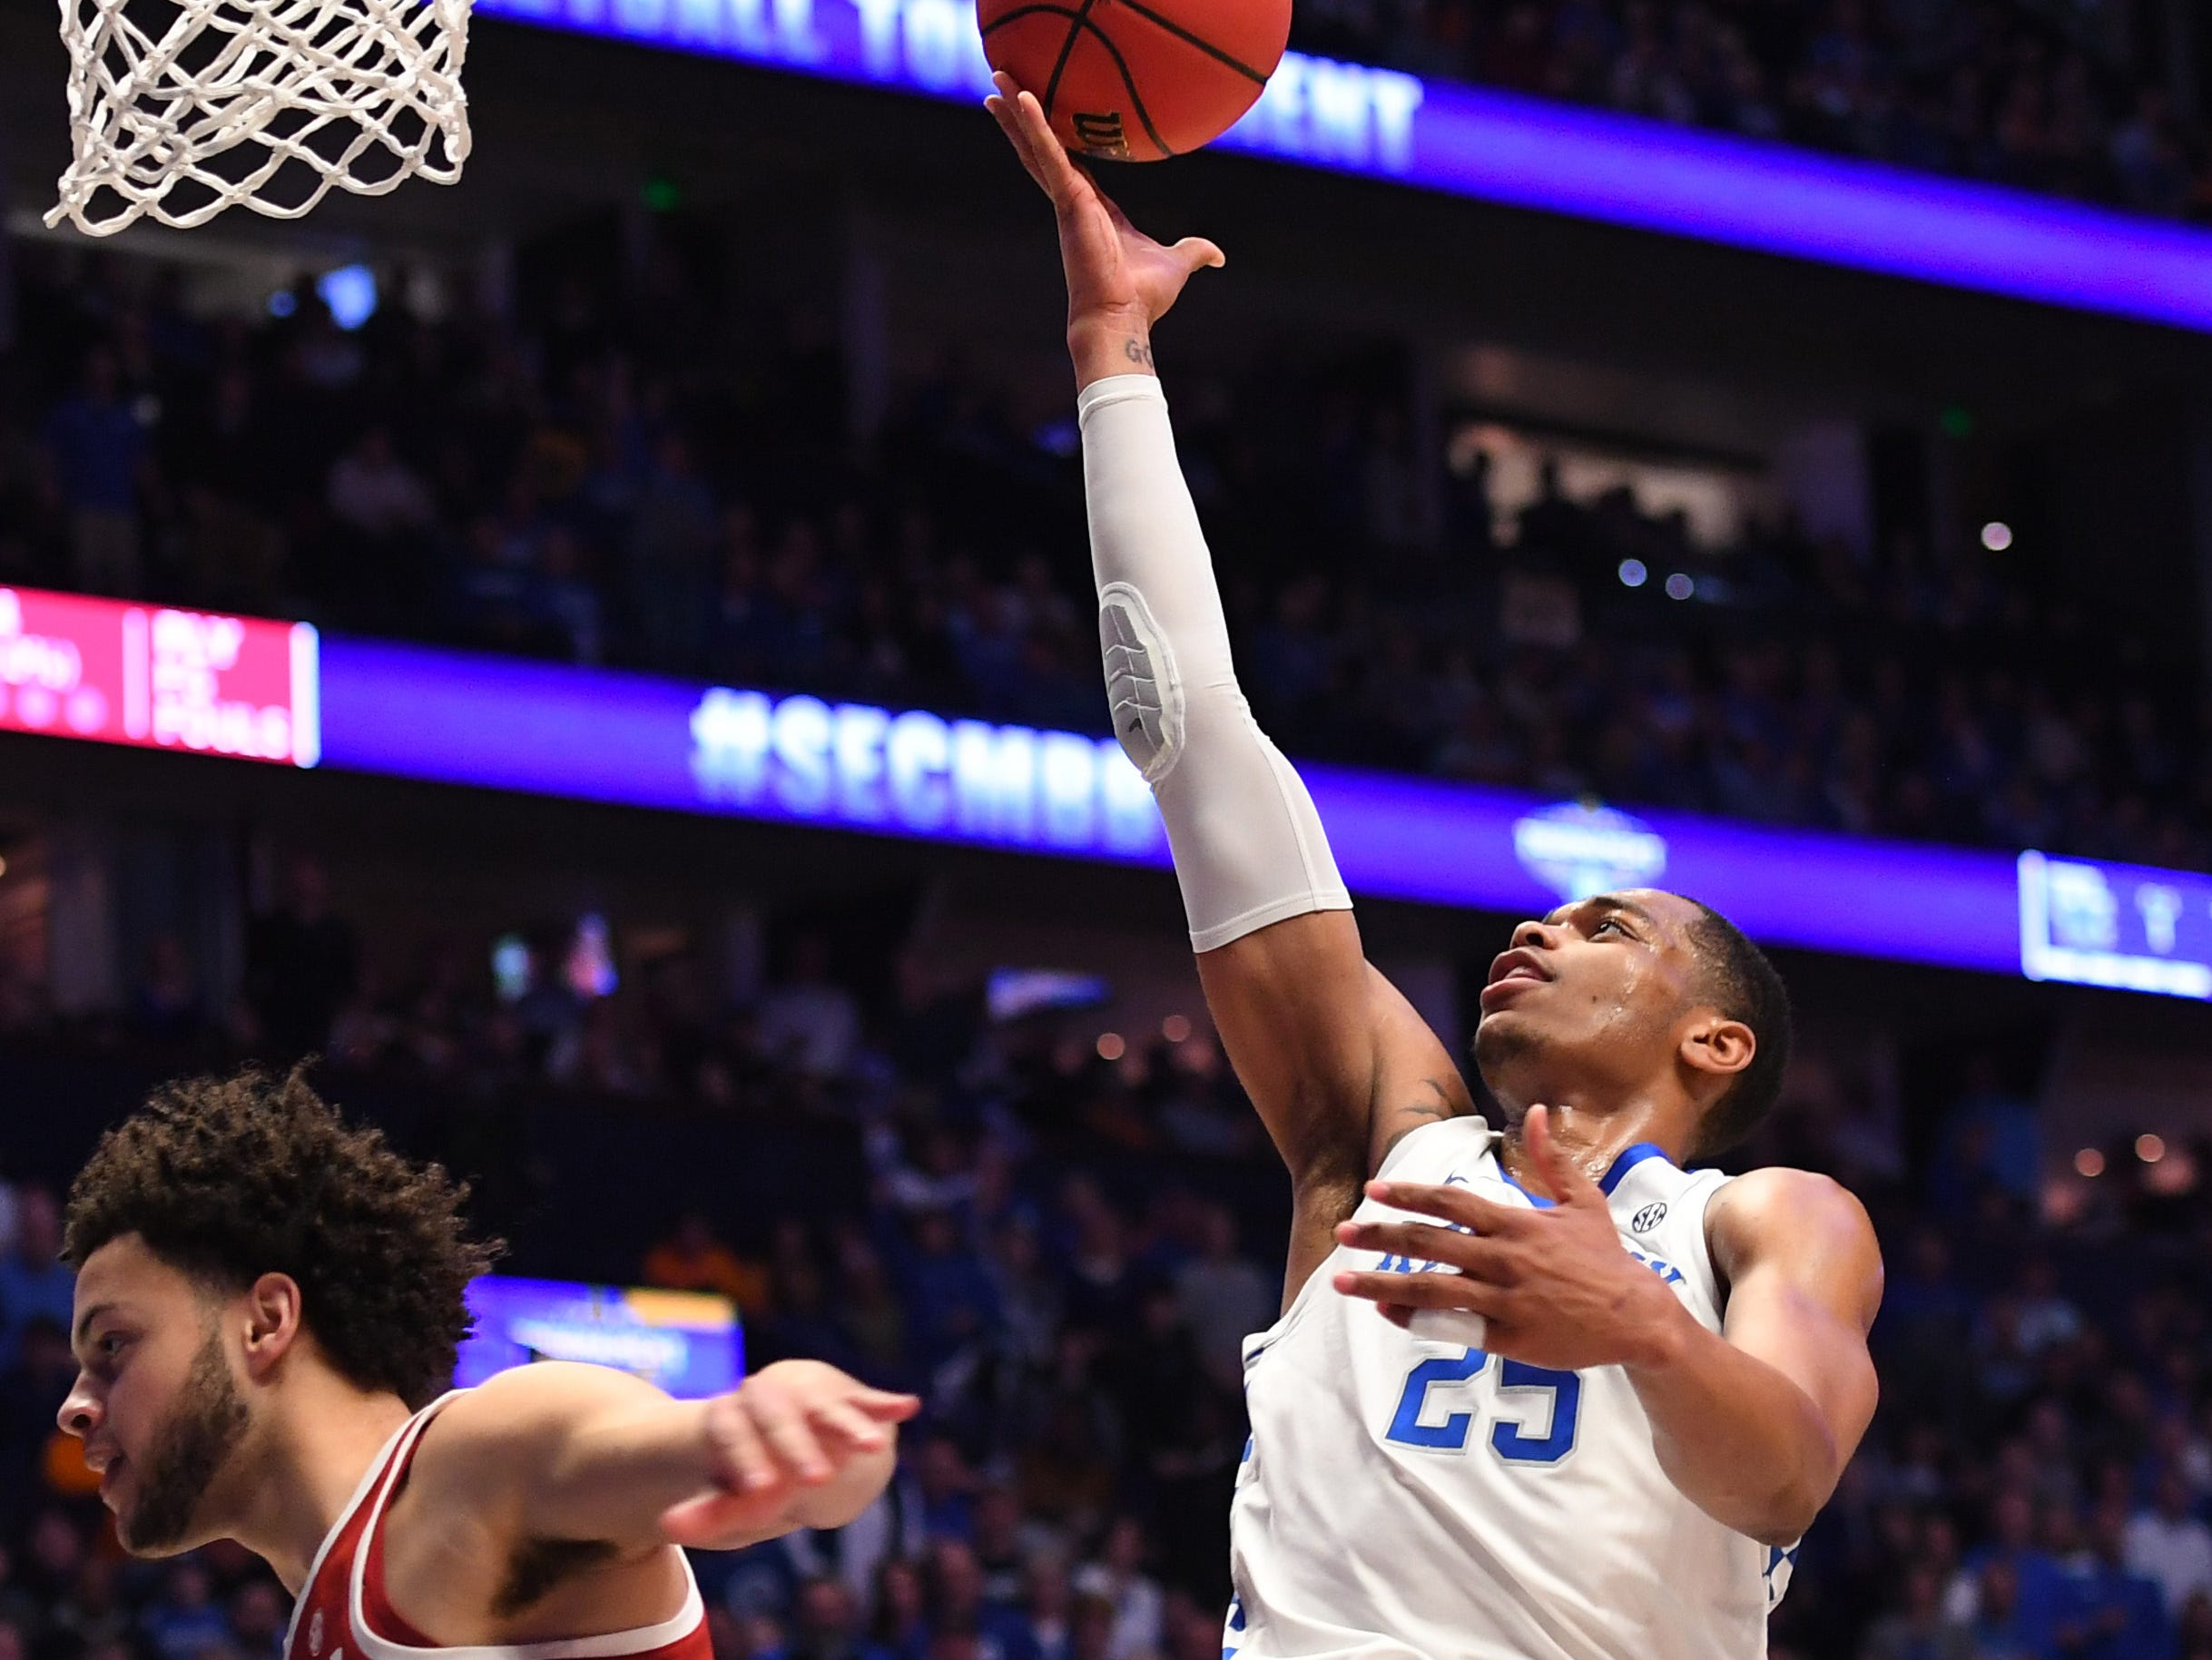 Mar 15, 2019; Nashville, TN, USA; Kentucky Wildcats forward PJ Washington (25) shoots as he is fouled by Alabama Crimson Tide forward Alex Reese (3) during the first half of the SEC conference tournament at Bridgestone Arena. Mandatory Credit: Christopher Hanewinckel-USA TODAY Sports